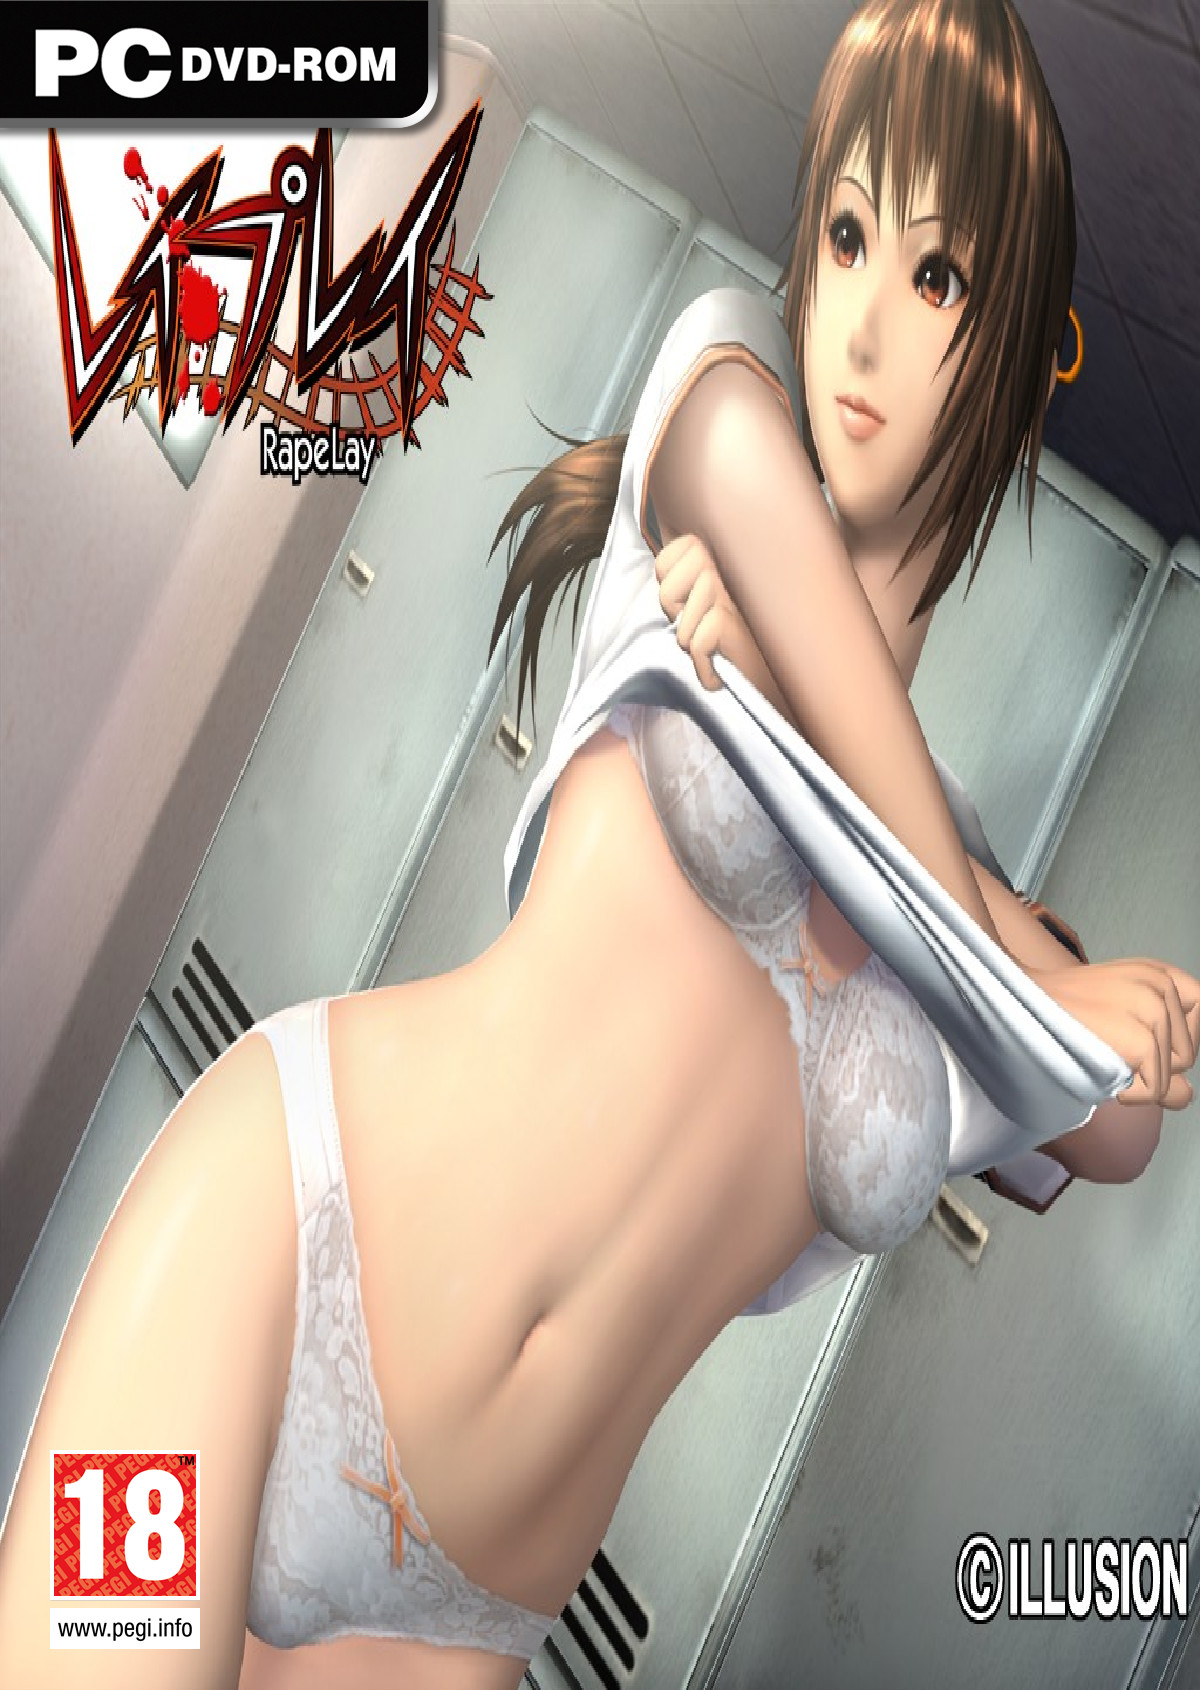 Japanese sex games for pc